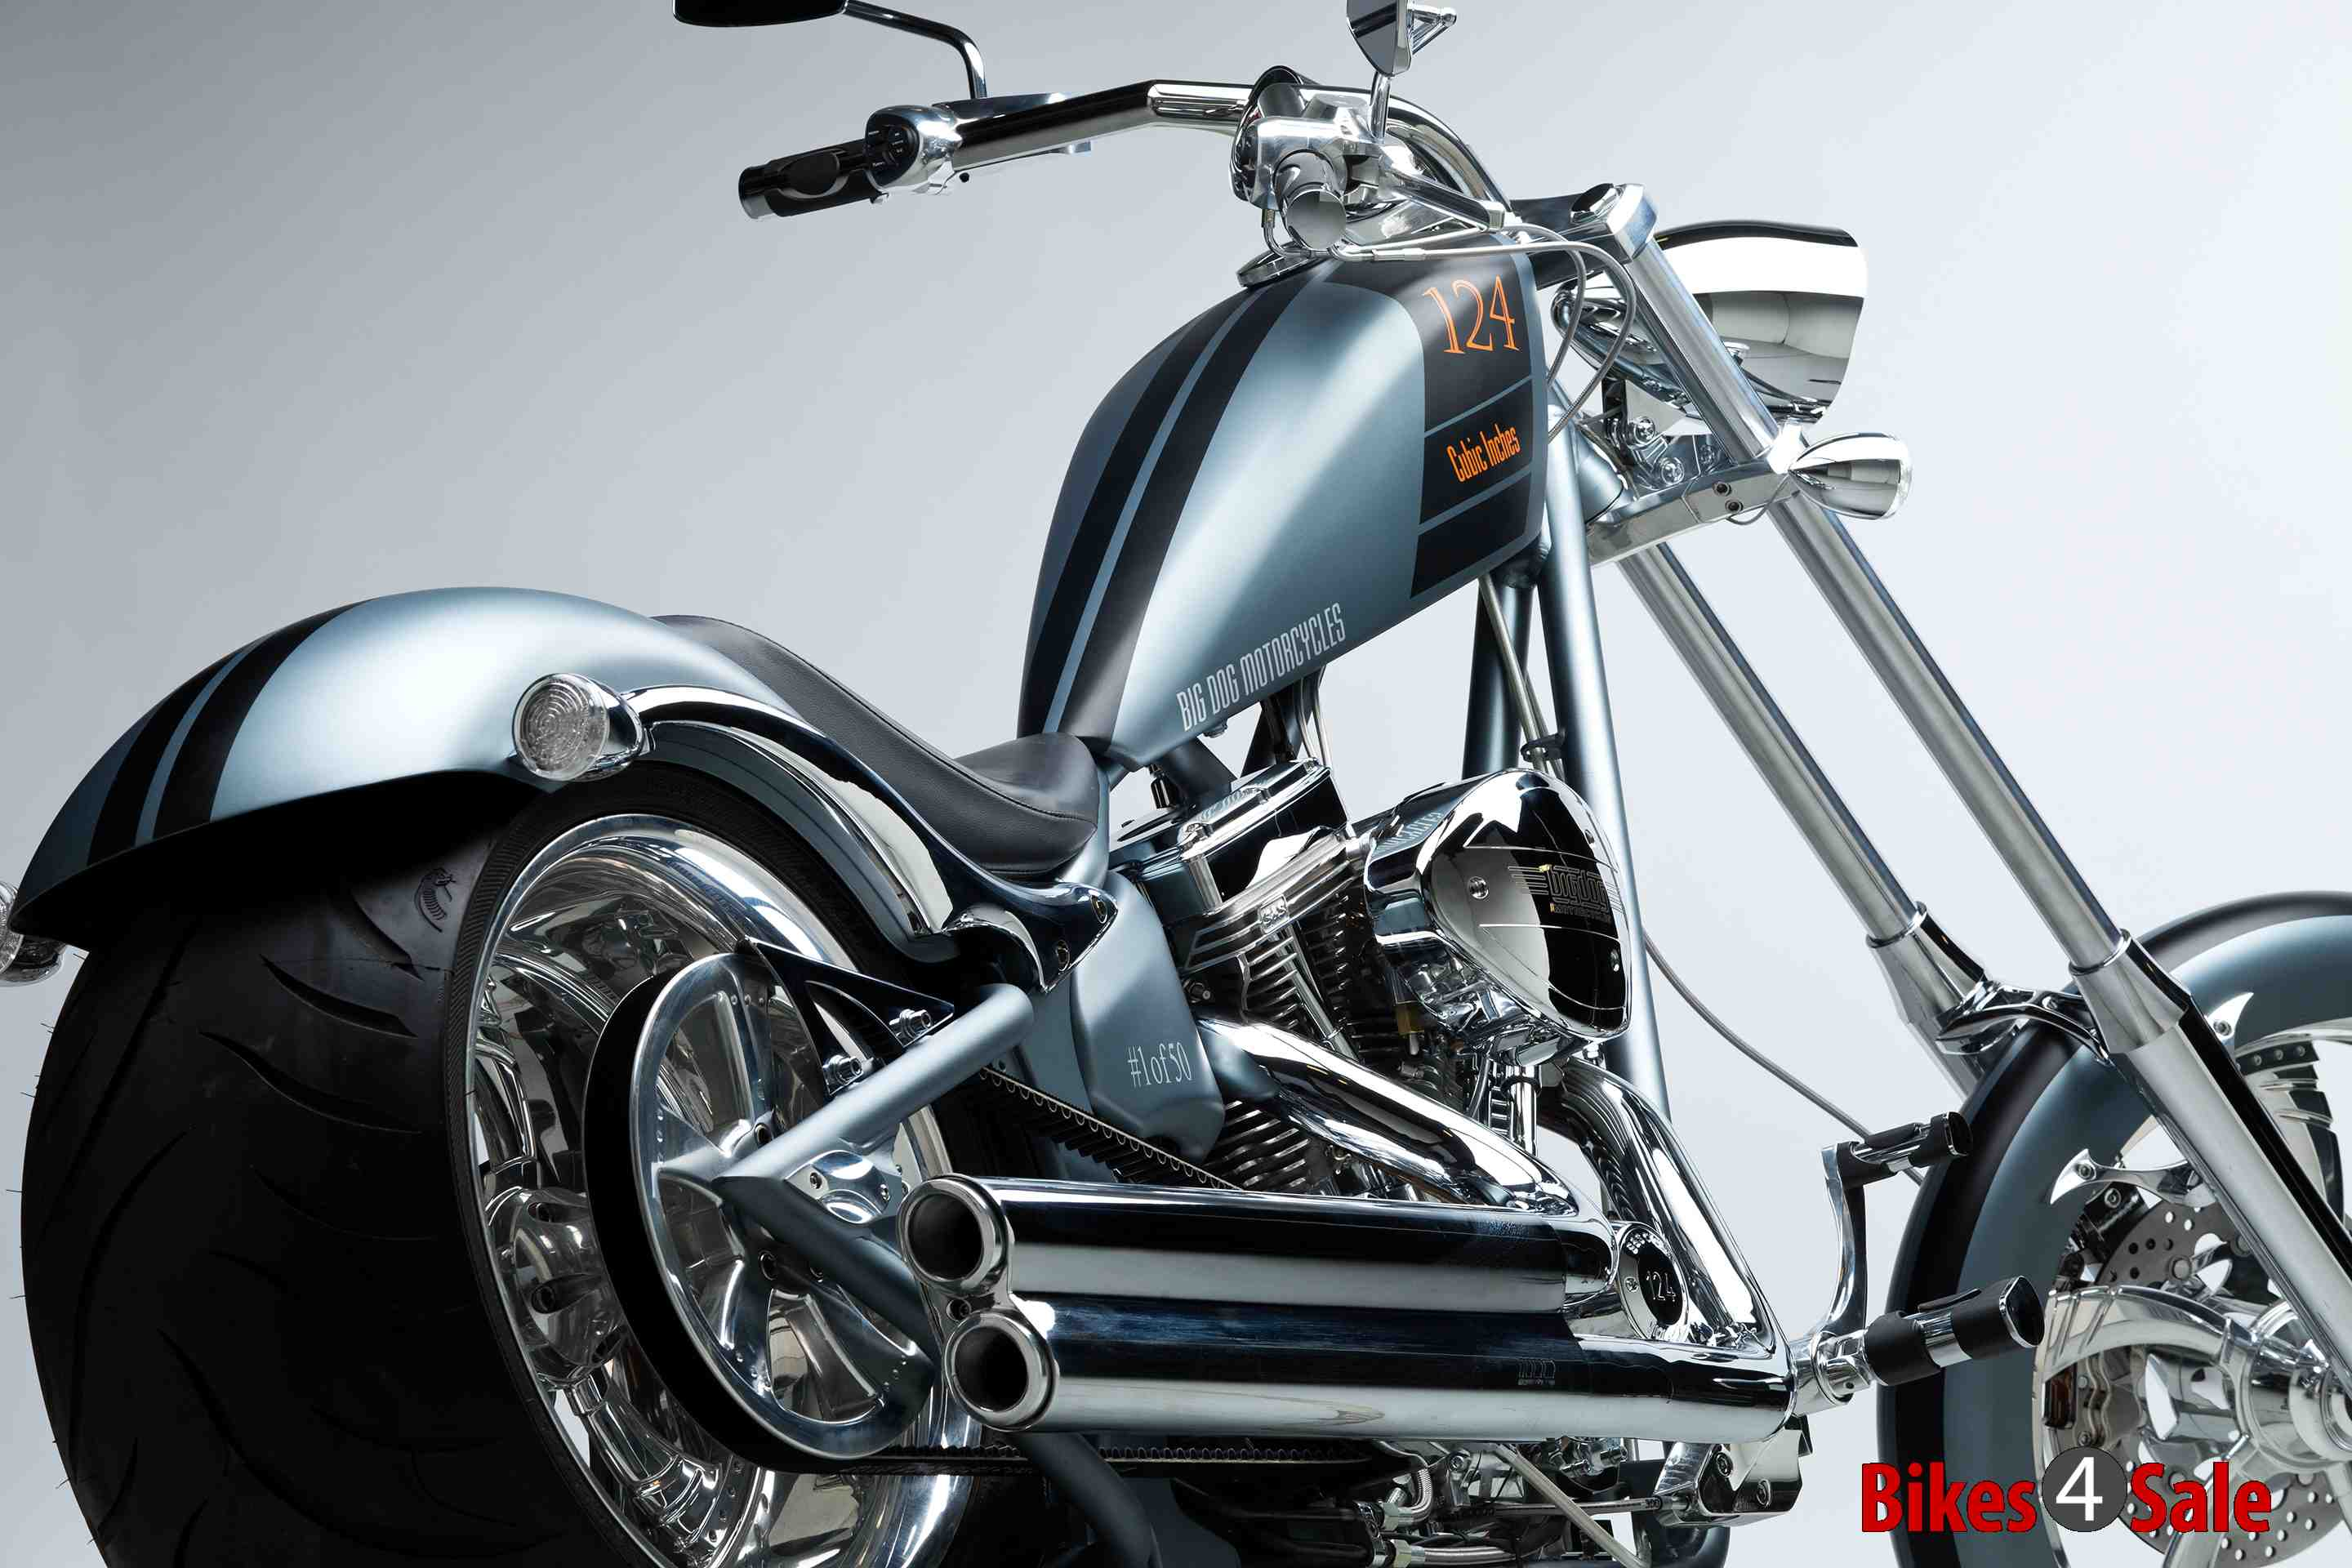 The Big Dog Chopper Motorcycles Are Now Available In India Bikes4sale